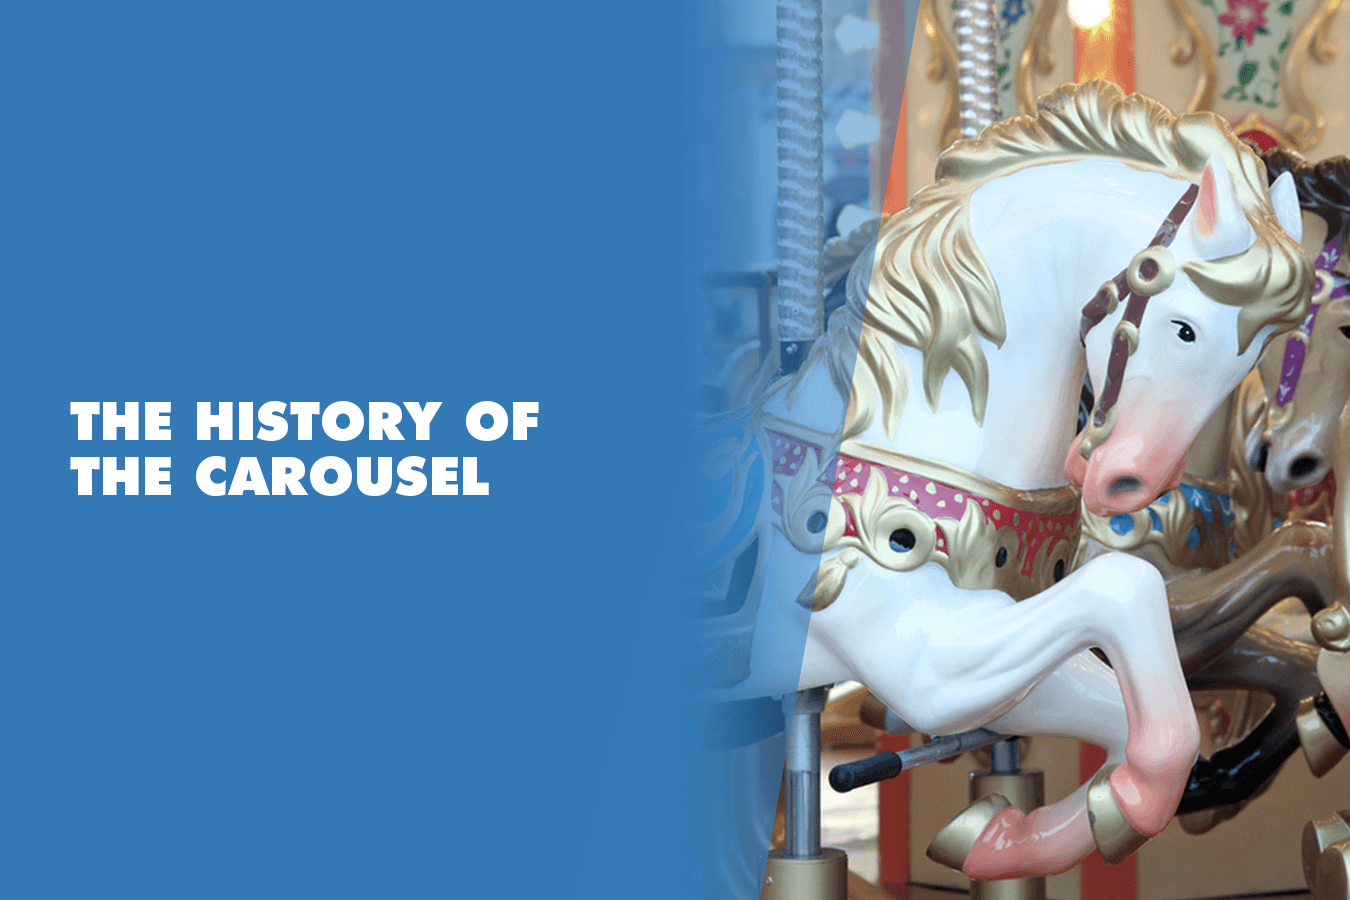 the history of the carousel